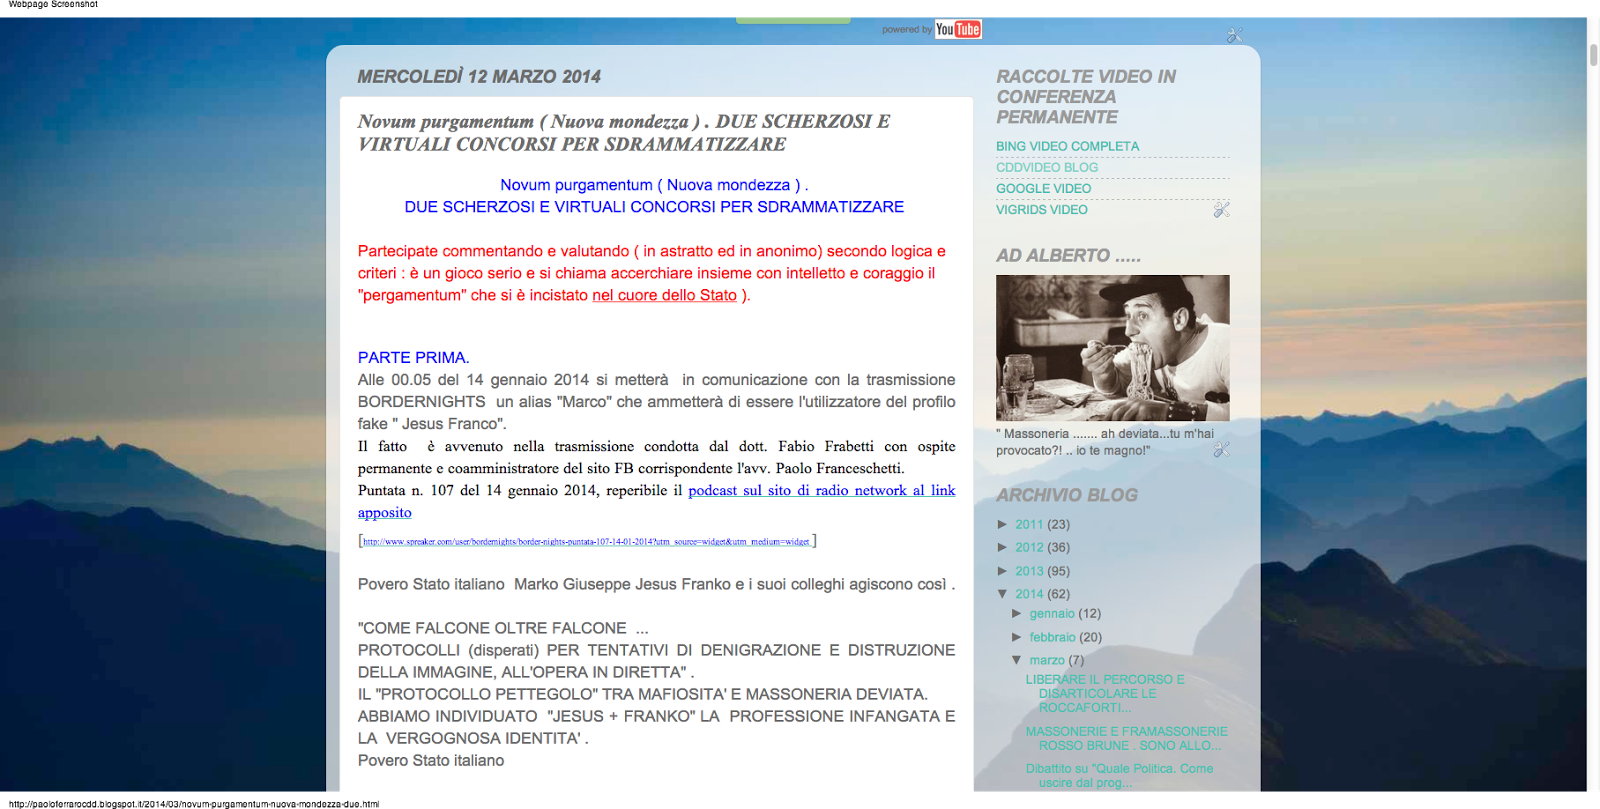 https://paoloferrarocdd.blogspot.it/2014/03/novum-purgamentum-nuova-mondezza-due.html